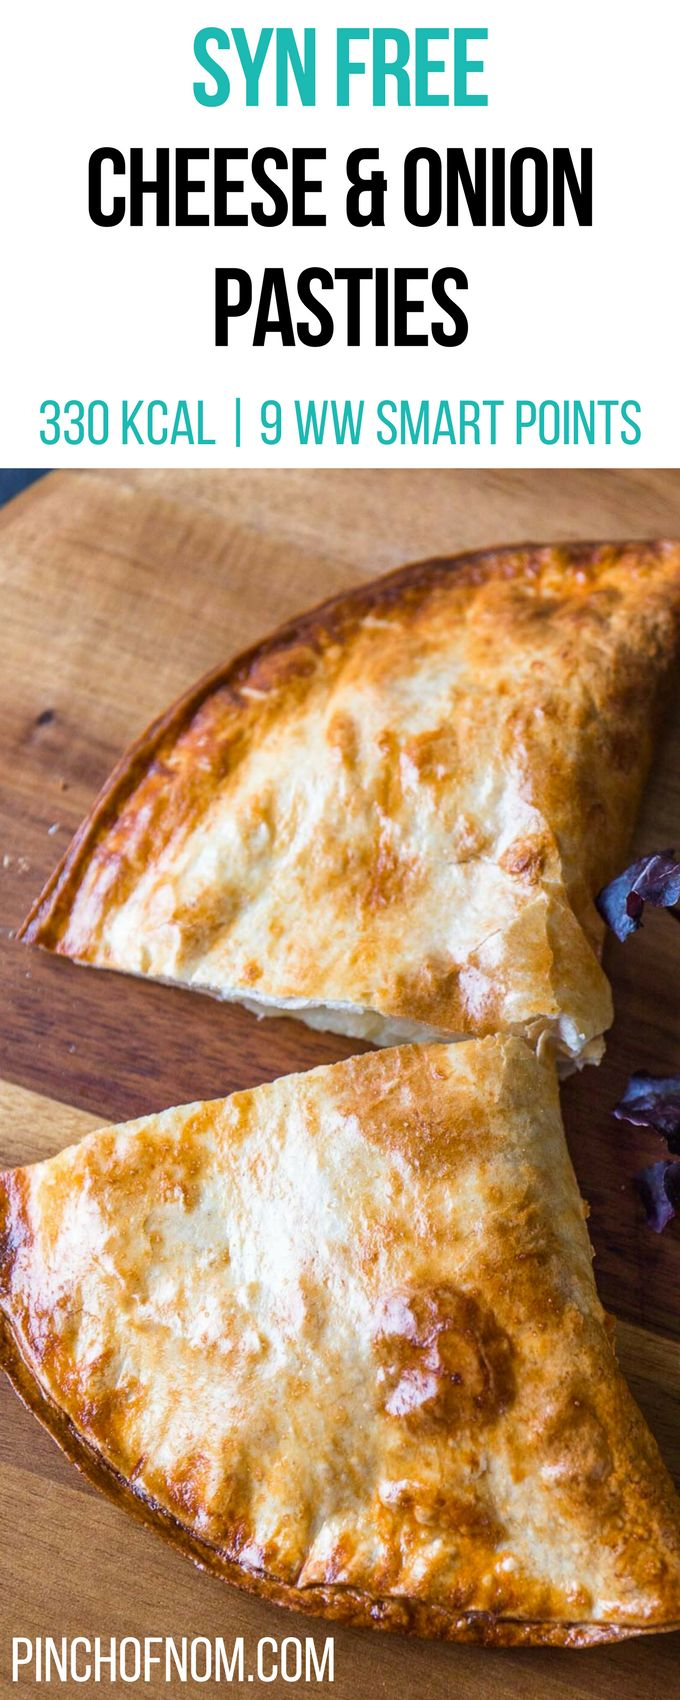 Syn Free Cheese & Onion Pasties | Pinch Of Nom Slimming World Recipes 330 kcal | Syn Free | 9 Weight Watchers Smart Points